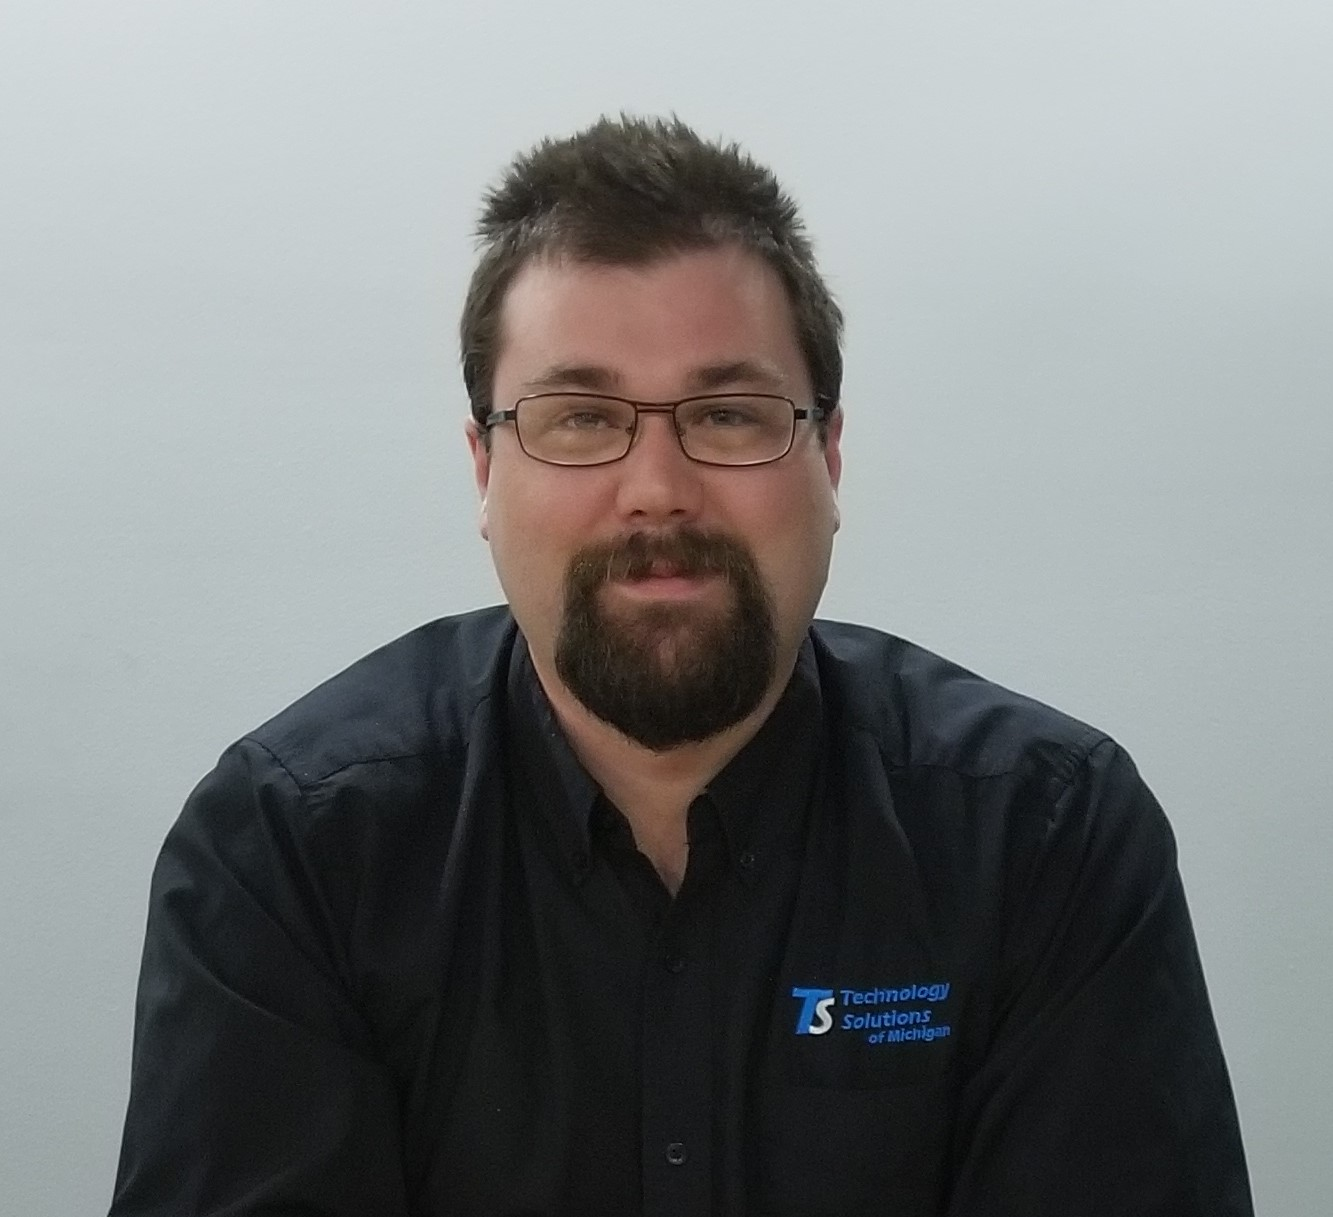 Ted Roberts is a developer at Technology Solutions of Michigan